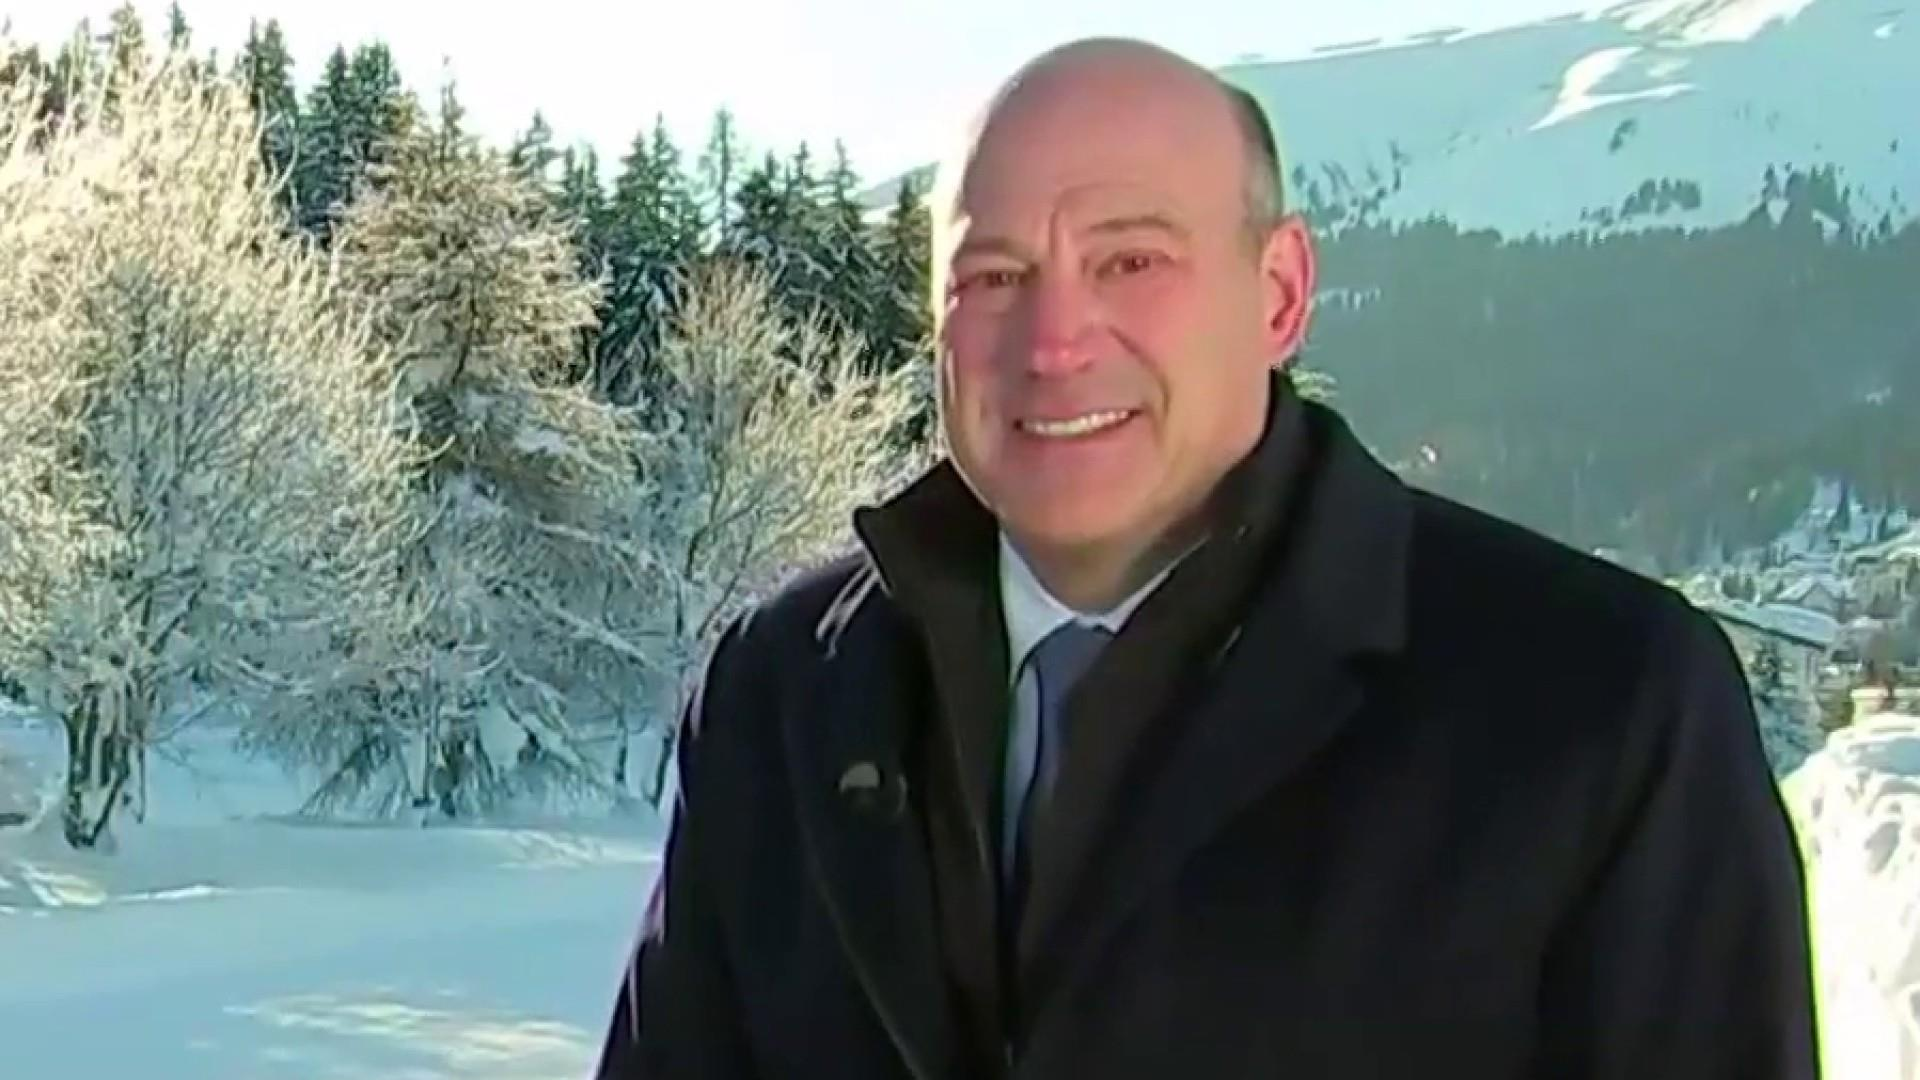 Gary Cohn: The Chinese aren't suffering, the U.S. consumer is